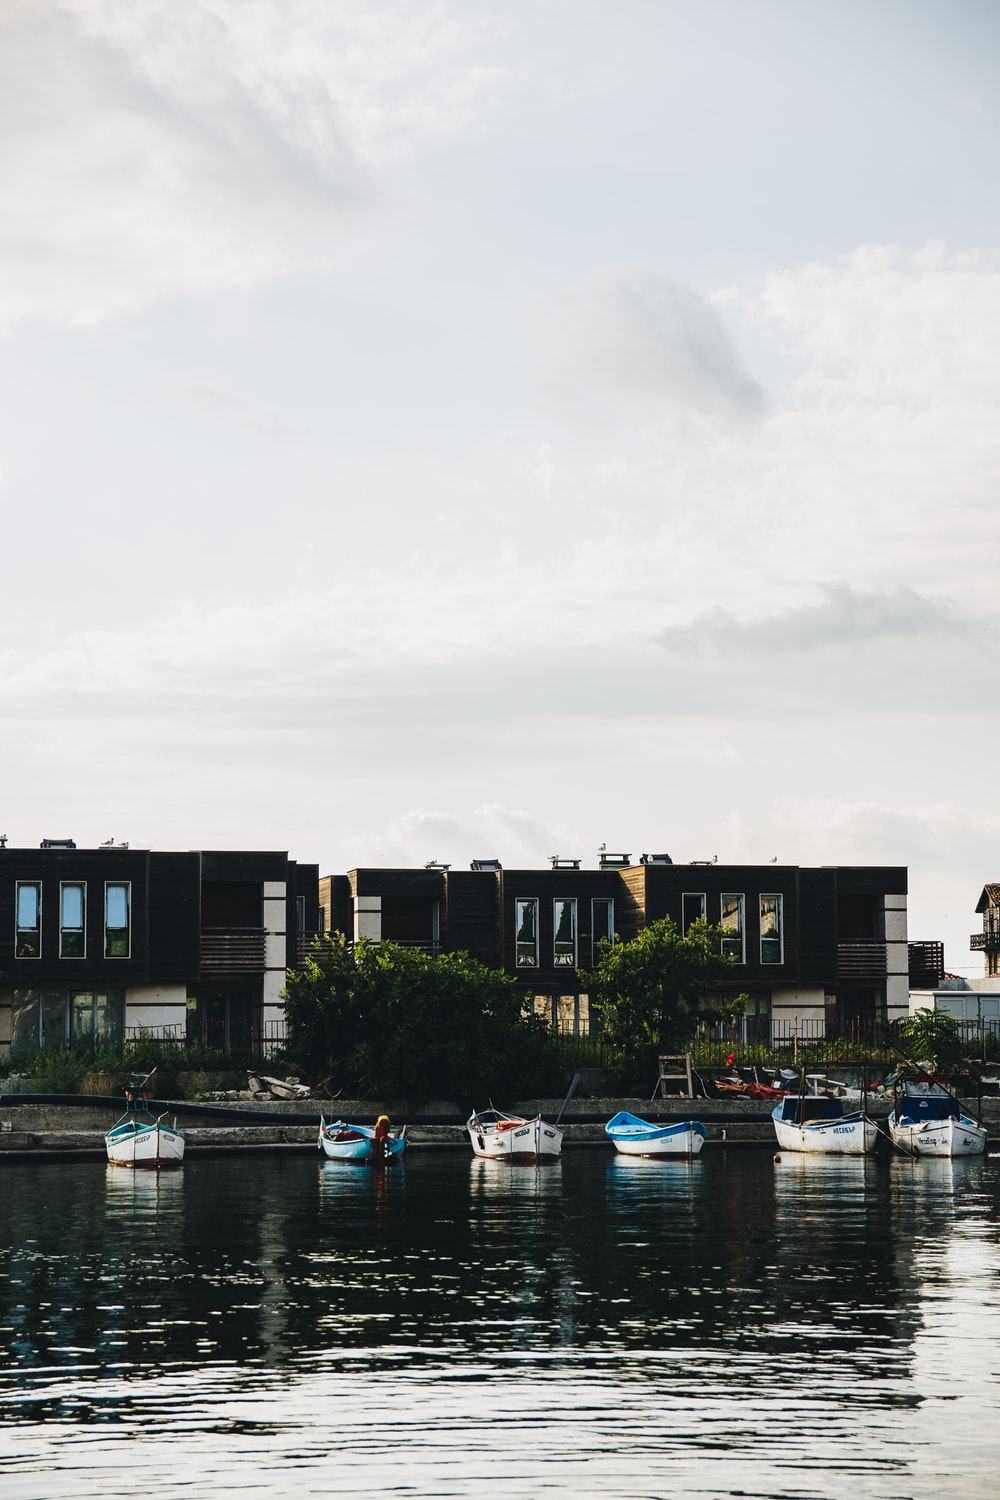 boat dock near building during daytime